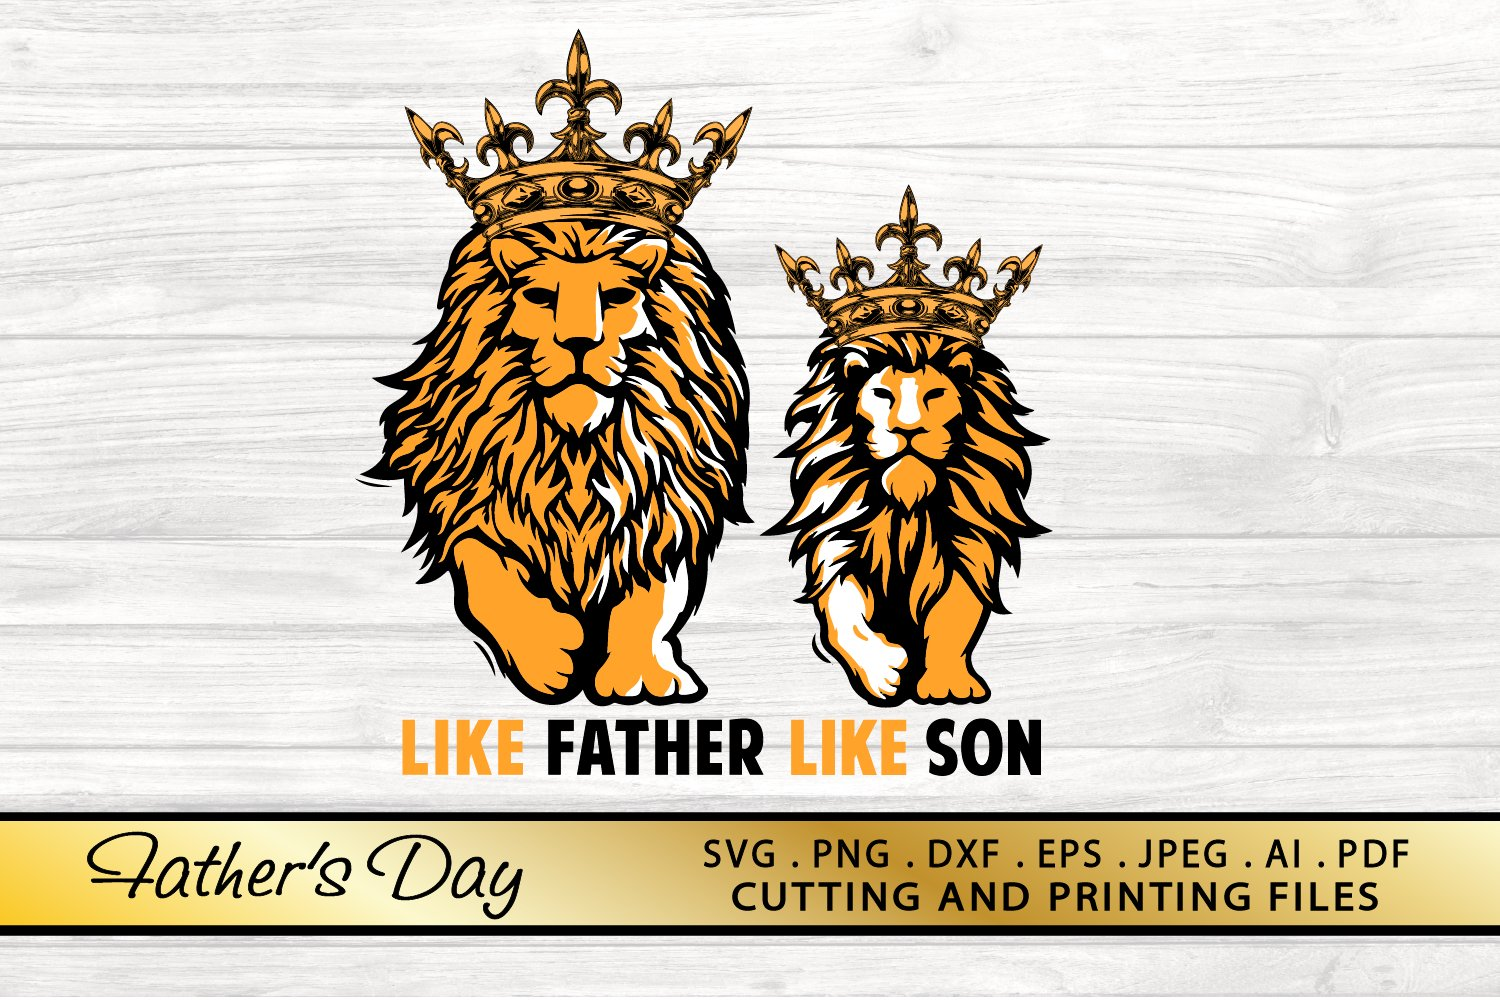 Fathers Day Svg Png Dxf Eps Like Father Like Son Svg Files 679080 Illustrations Design Bundles